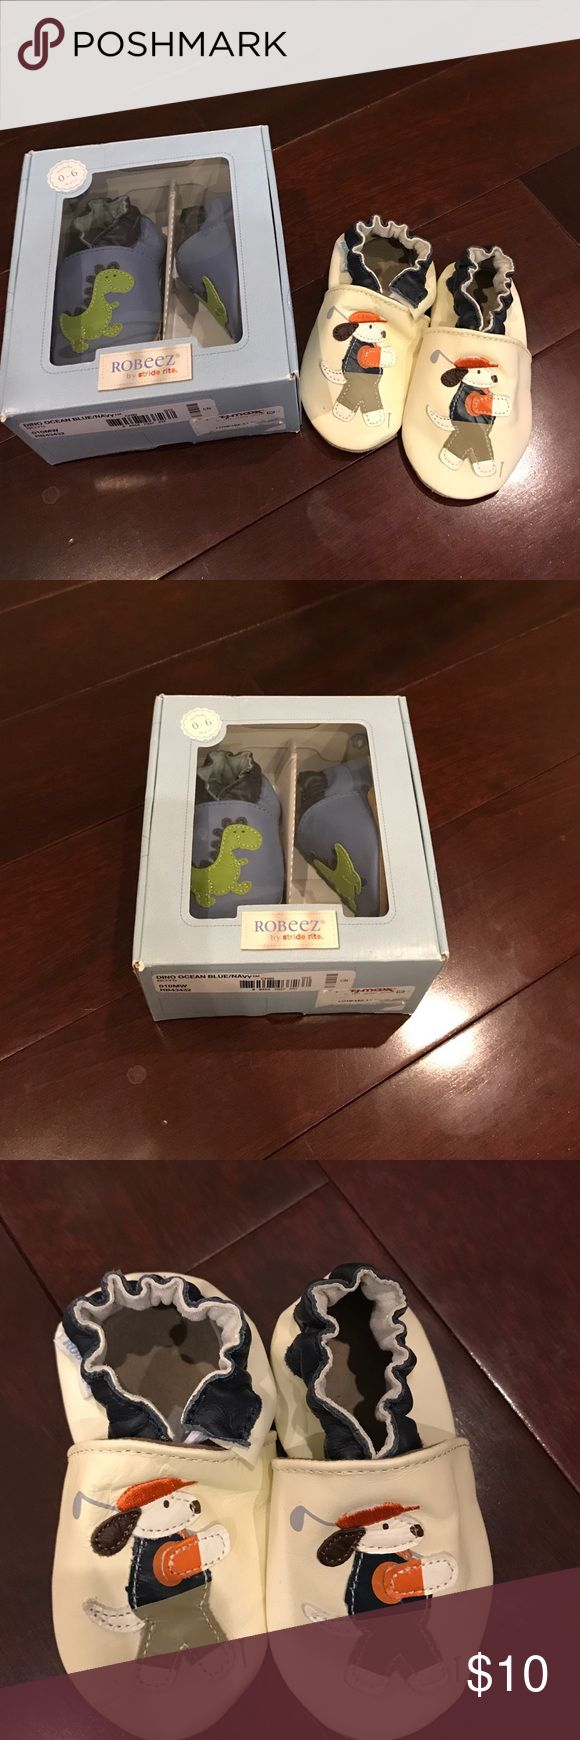 Robert Crib shoes by Stride Rite. Two pairs Two pairs of Robeez Crib shoes.Dino Ocean navy blue are brand new in box never worn size 0-6 months. Golfing puppy is 6-12 months also never been worn but no box. Excellent condition. Robeez Shoes Baby & Walker